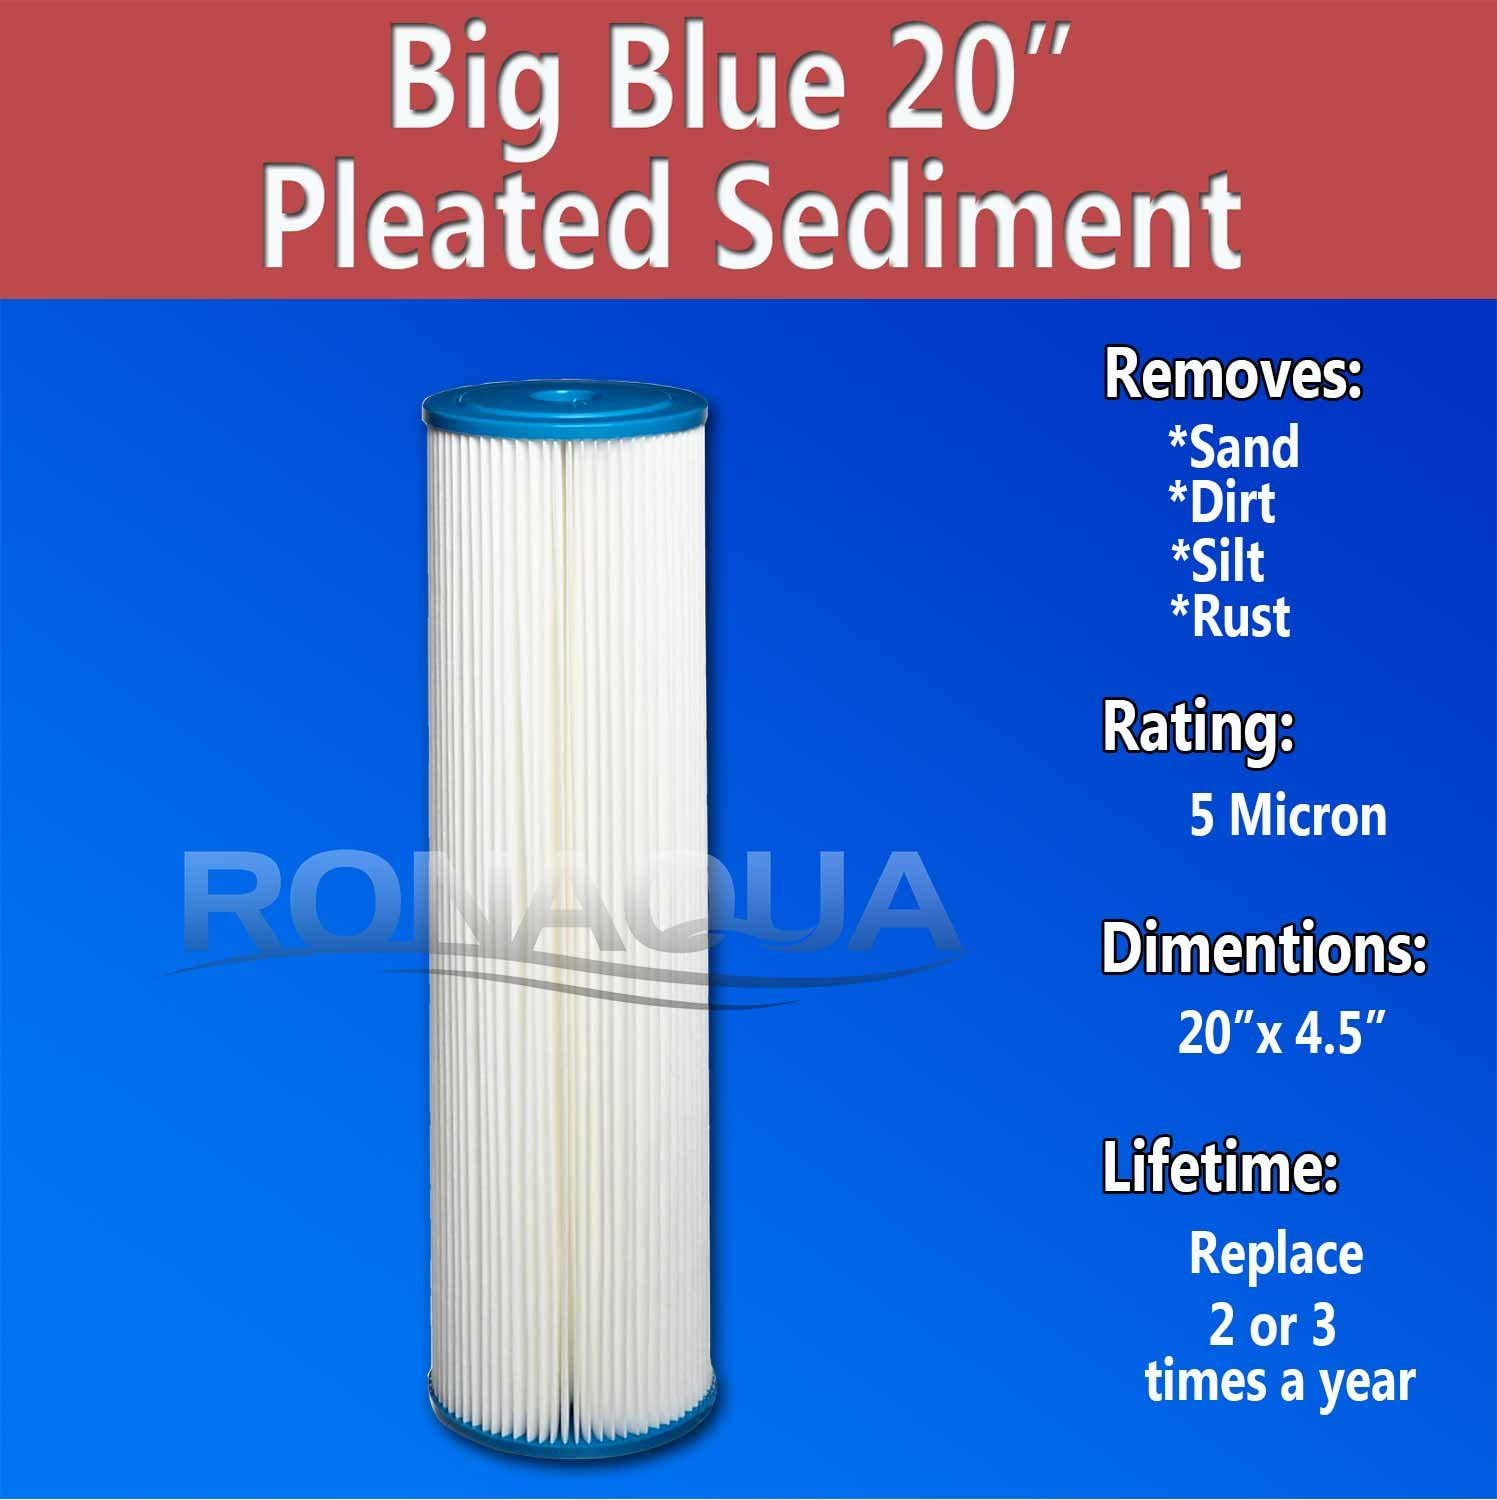 Big Blue Pleated Washable /& Reusable Sediment Filter 5 Micron Amplified Surface Area Silt Rust Removes Sand Set of 8 Extended Filter Life for 20 Big Blue Housing Dirt